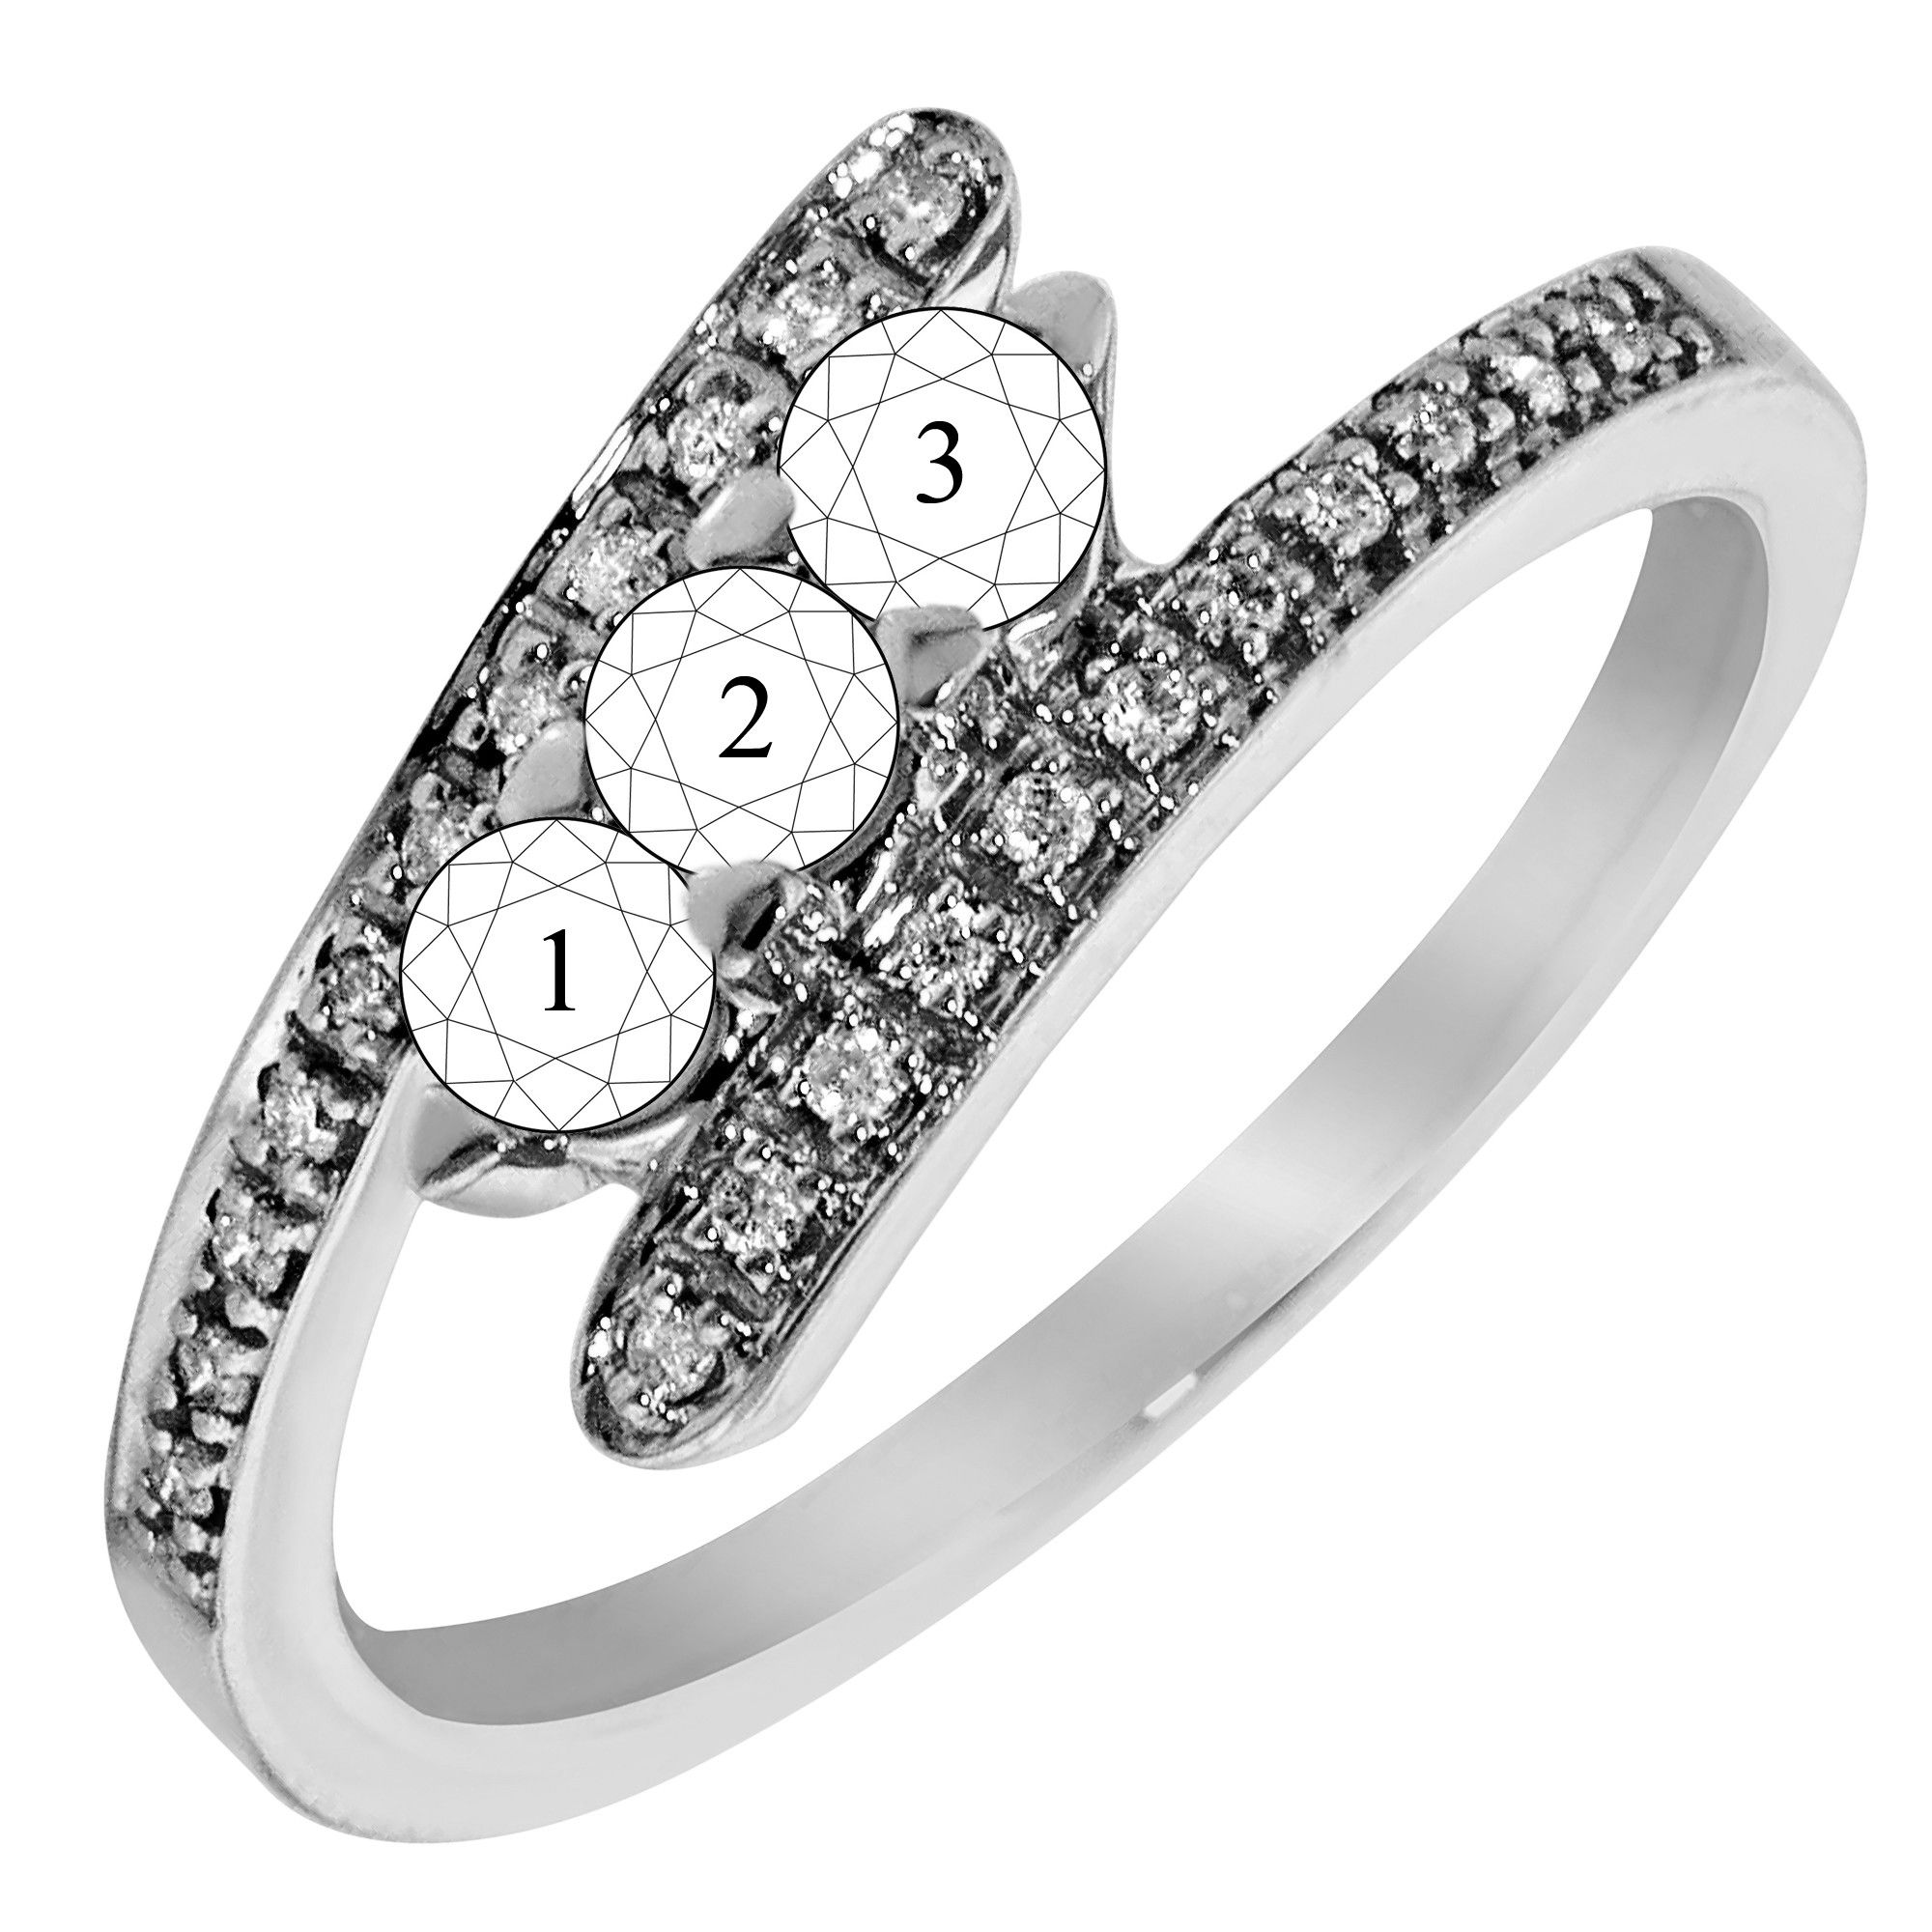 featuring rings our impress friends miadora round pin bypass this two wedding collection cut from and diamond gold your with white ring sapphire tdw